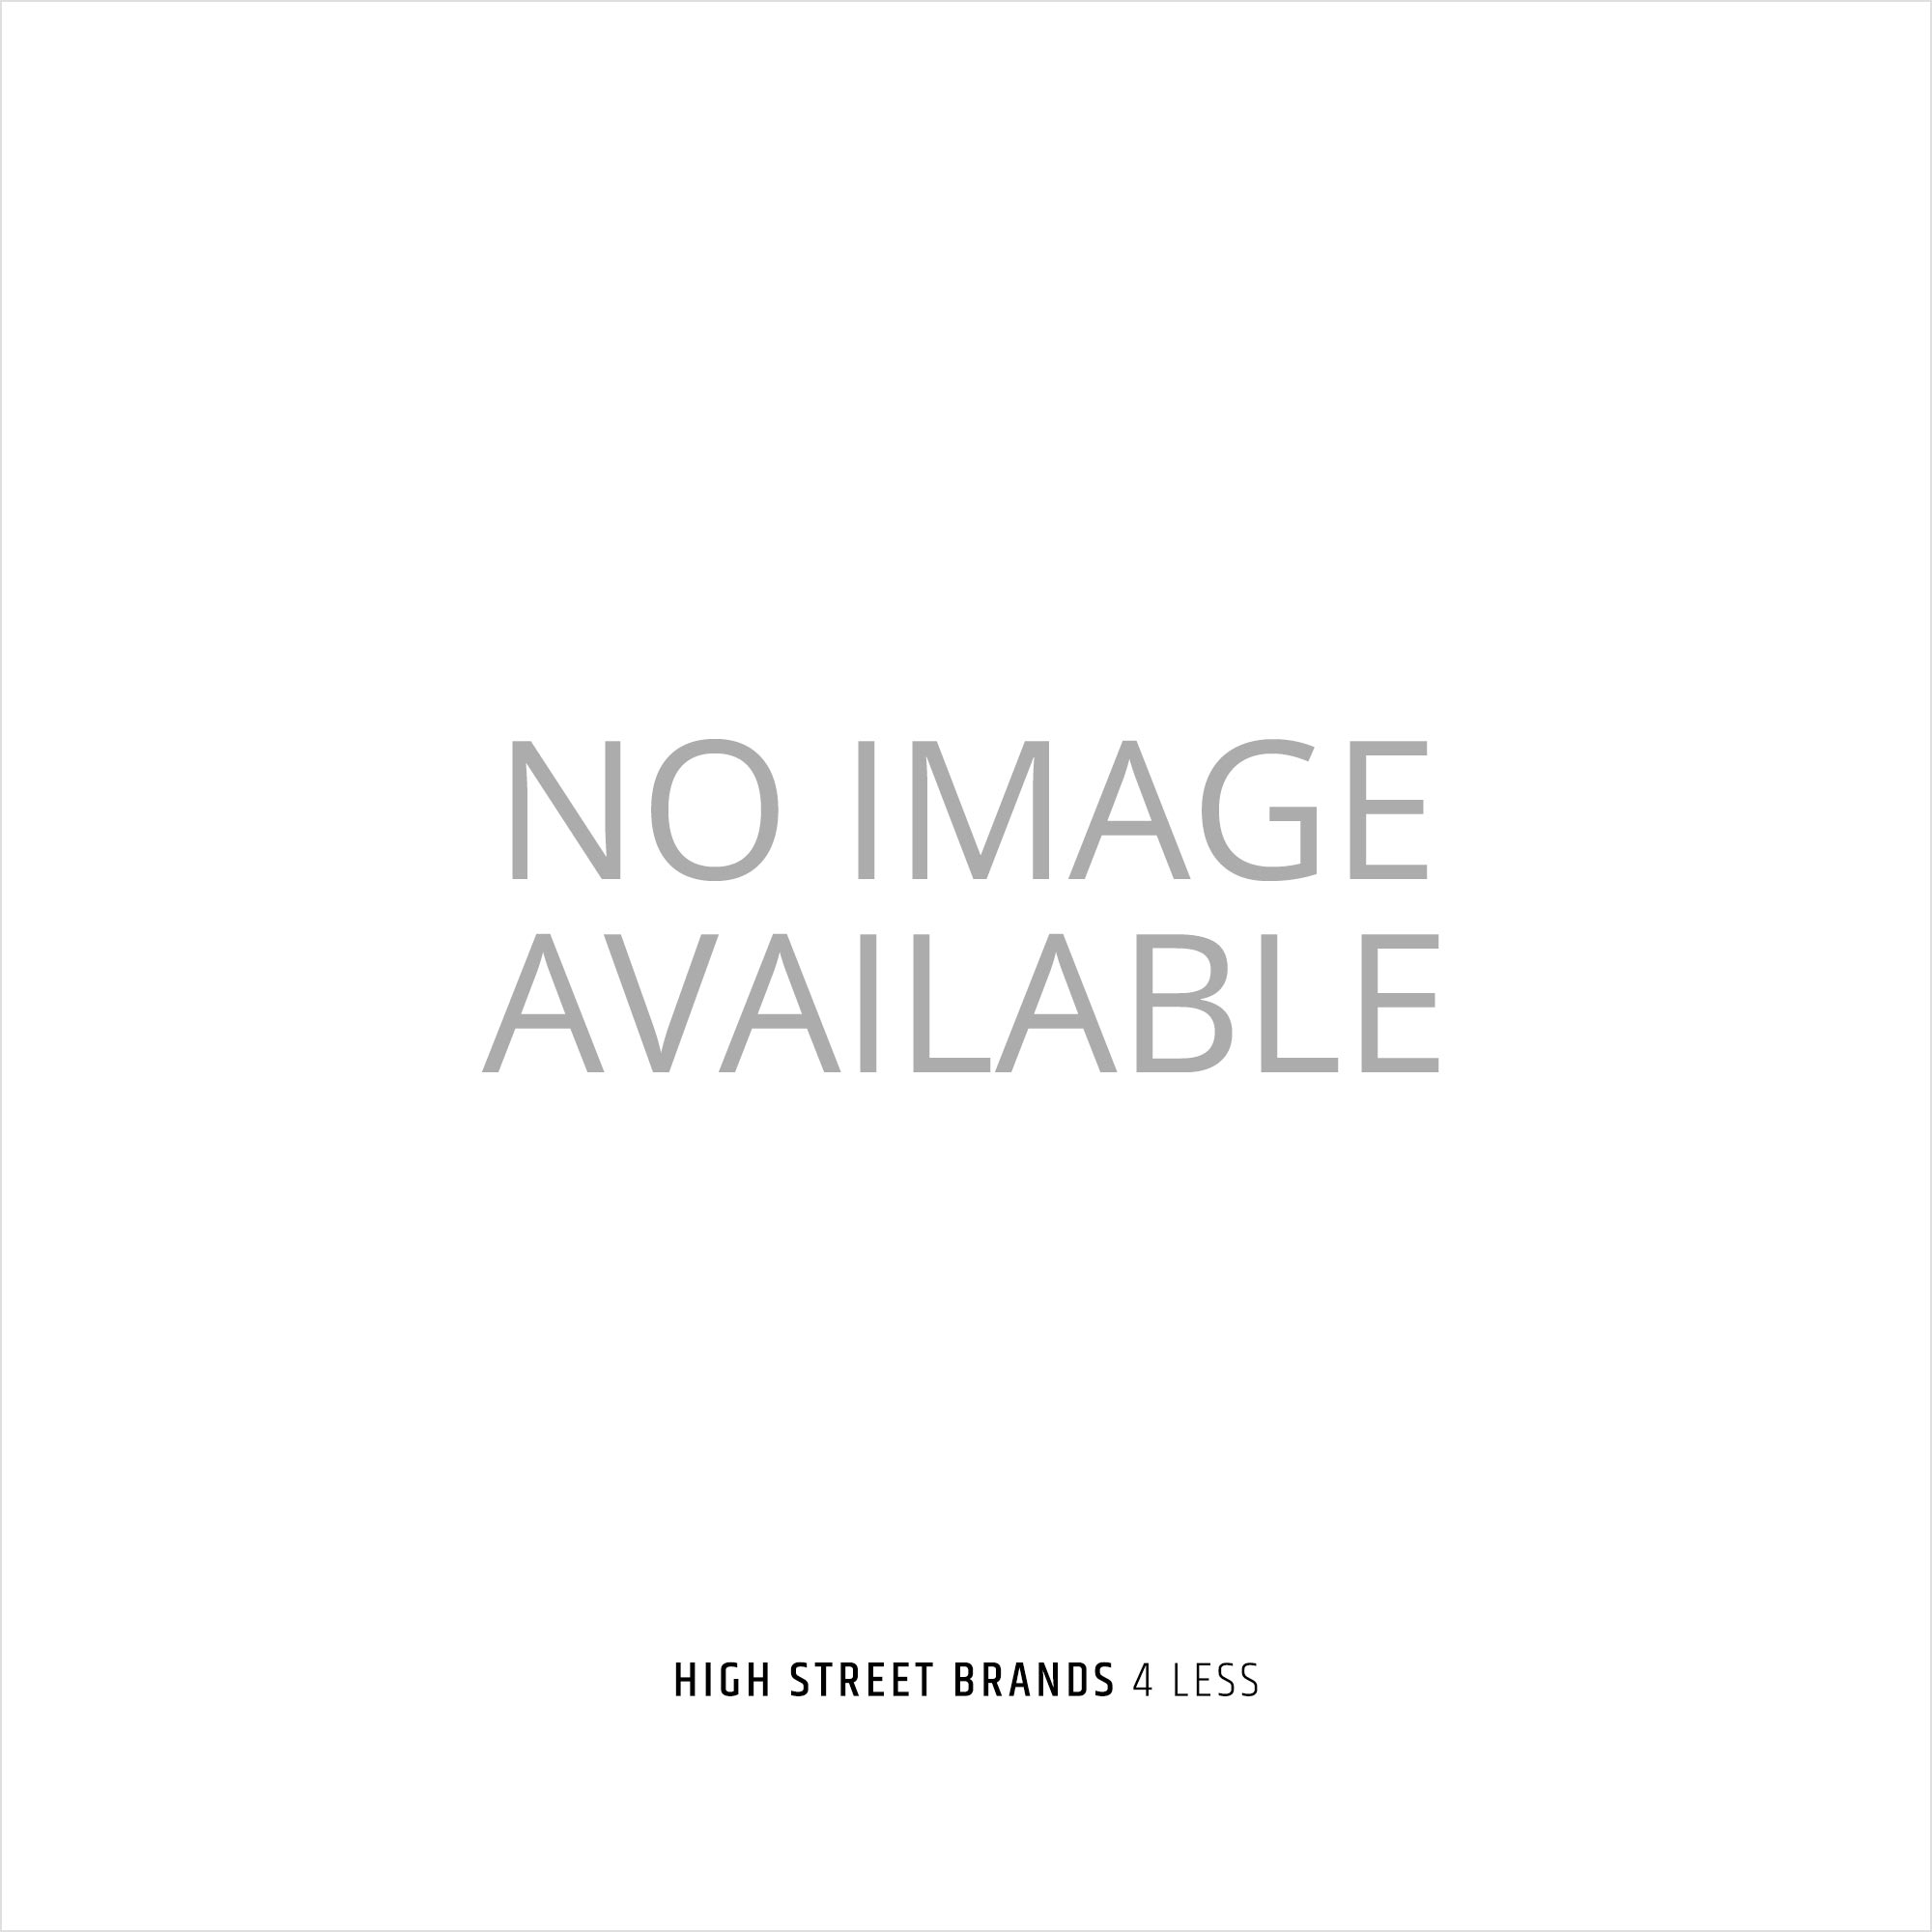 b3c8bfeaa8a Rimmel Rimmel Shake It Fresh Volume Mascara - 001 Black - Rimmel from High  Street Brands 4 Less UK